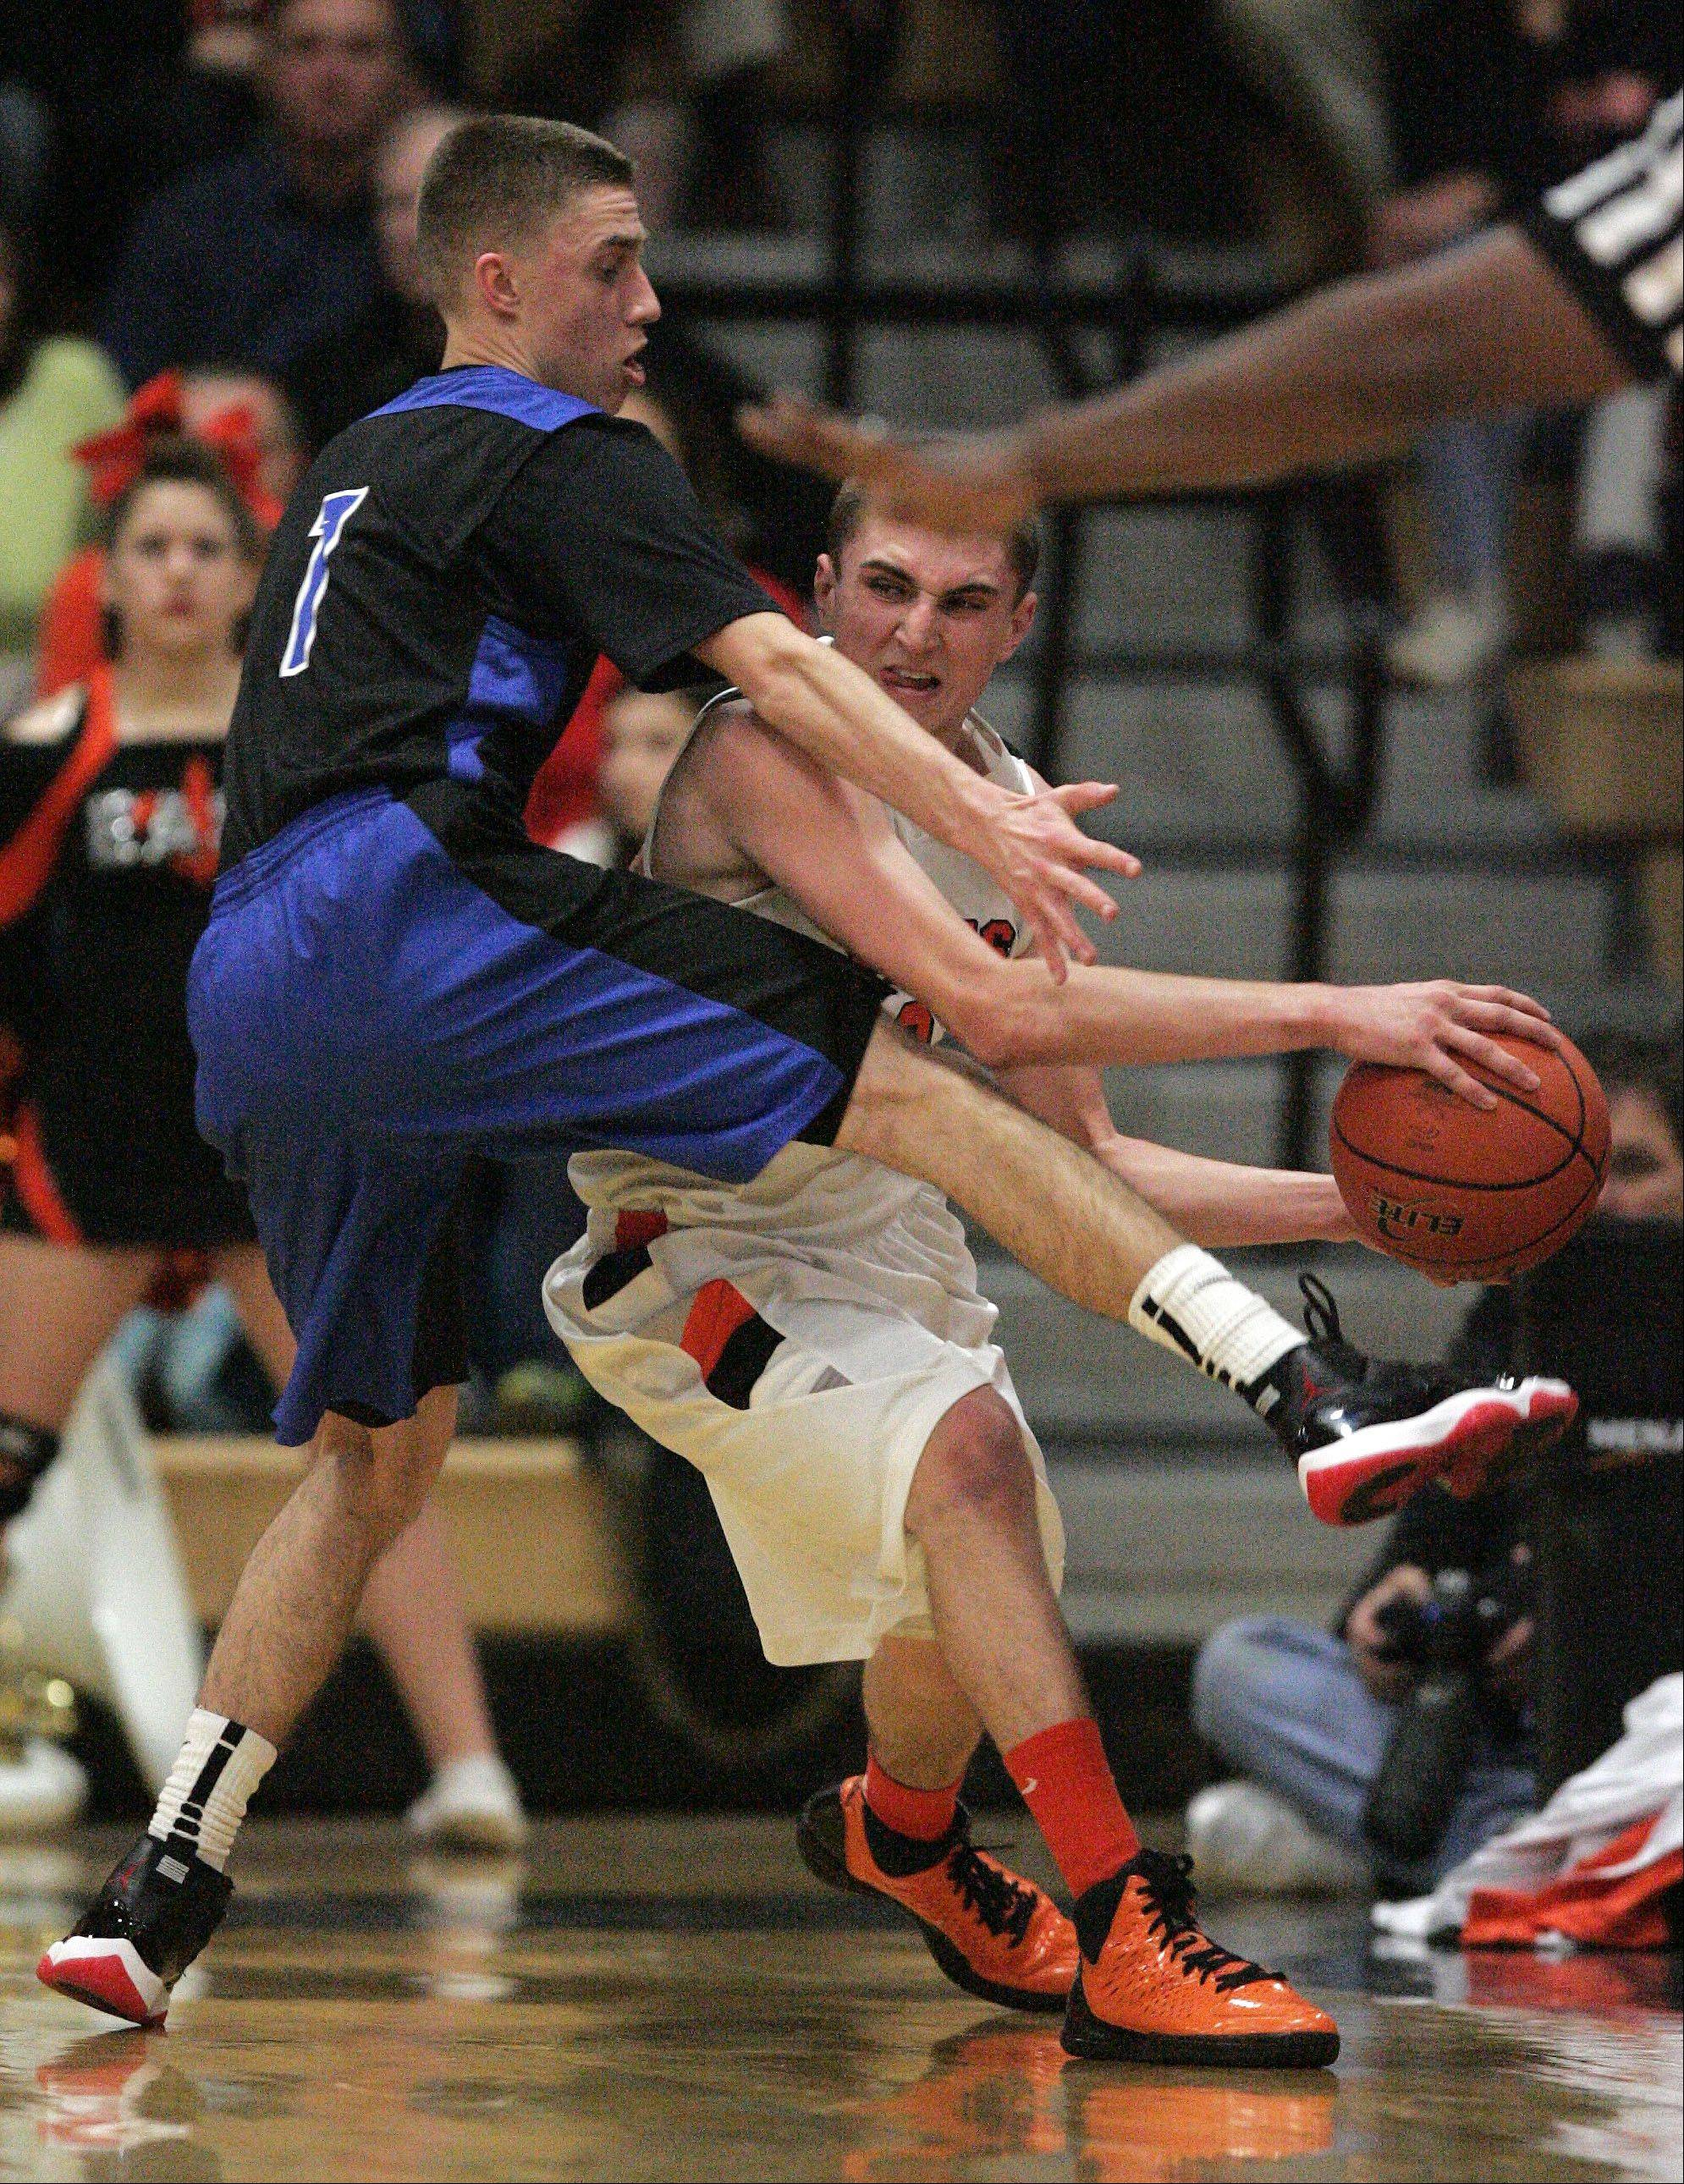 St. Charles North's Alec Goetz pressures St. Charles East's Dom Adduci.